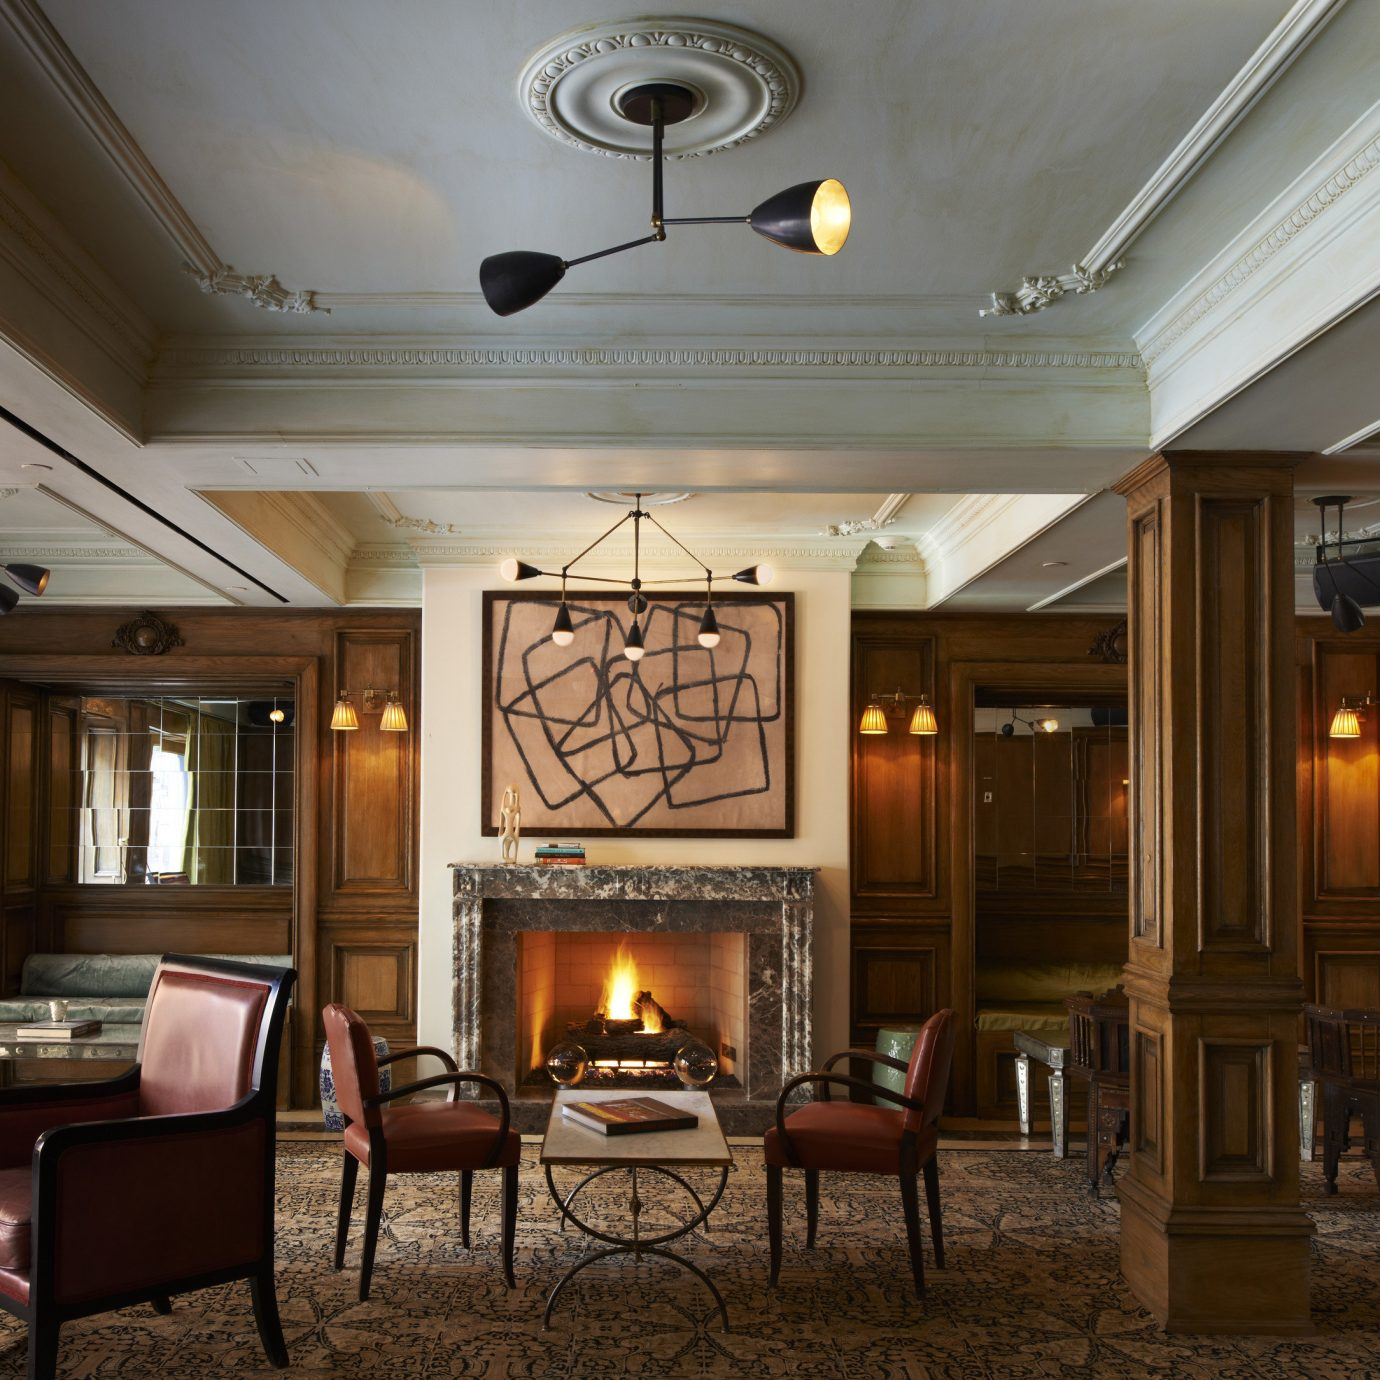 Hotels Luxury Travel Romantic Hotels chair Lobby property home lighting living room mansion restaurant